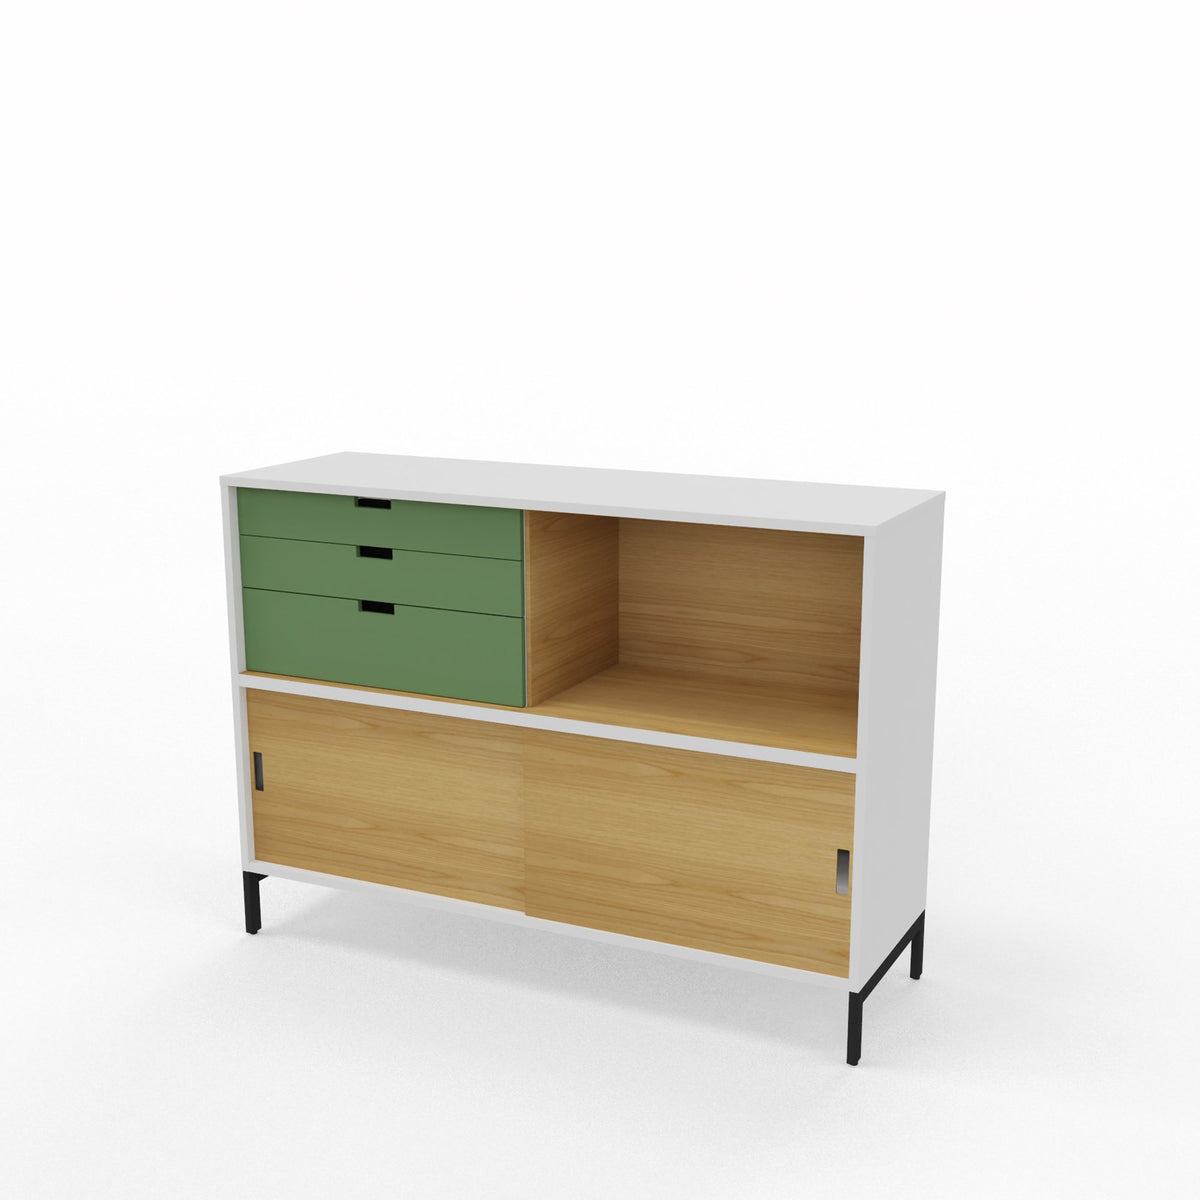 Edsbyn Office Neat Credenza 1200m White and Oak with Bay Leaf Green